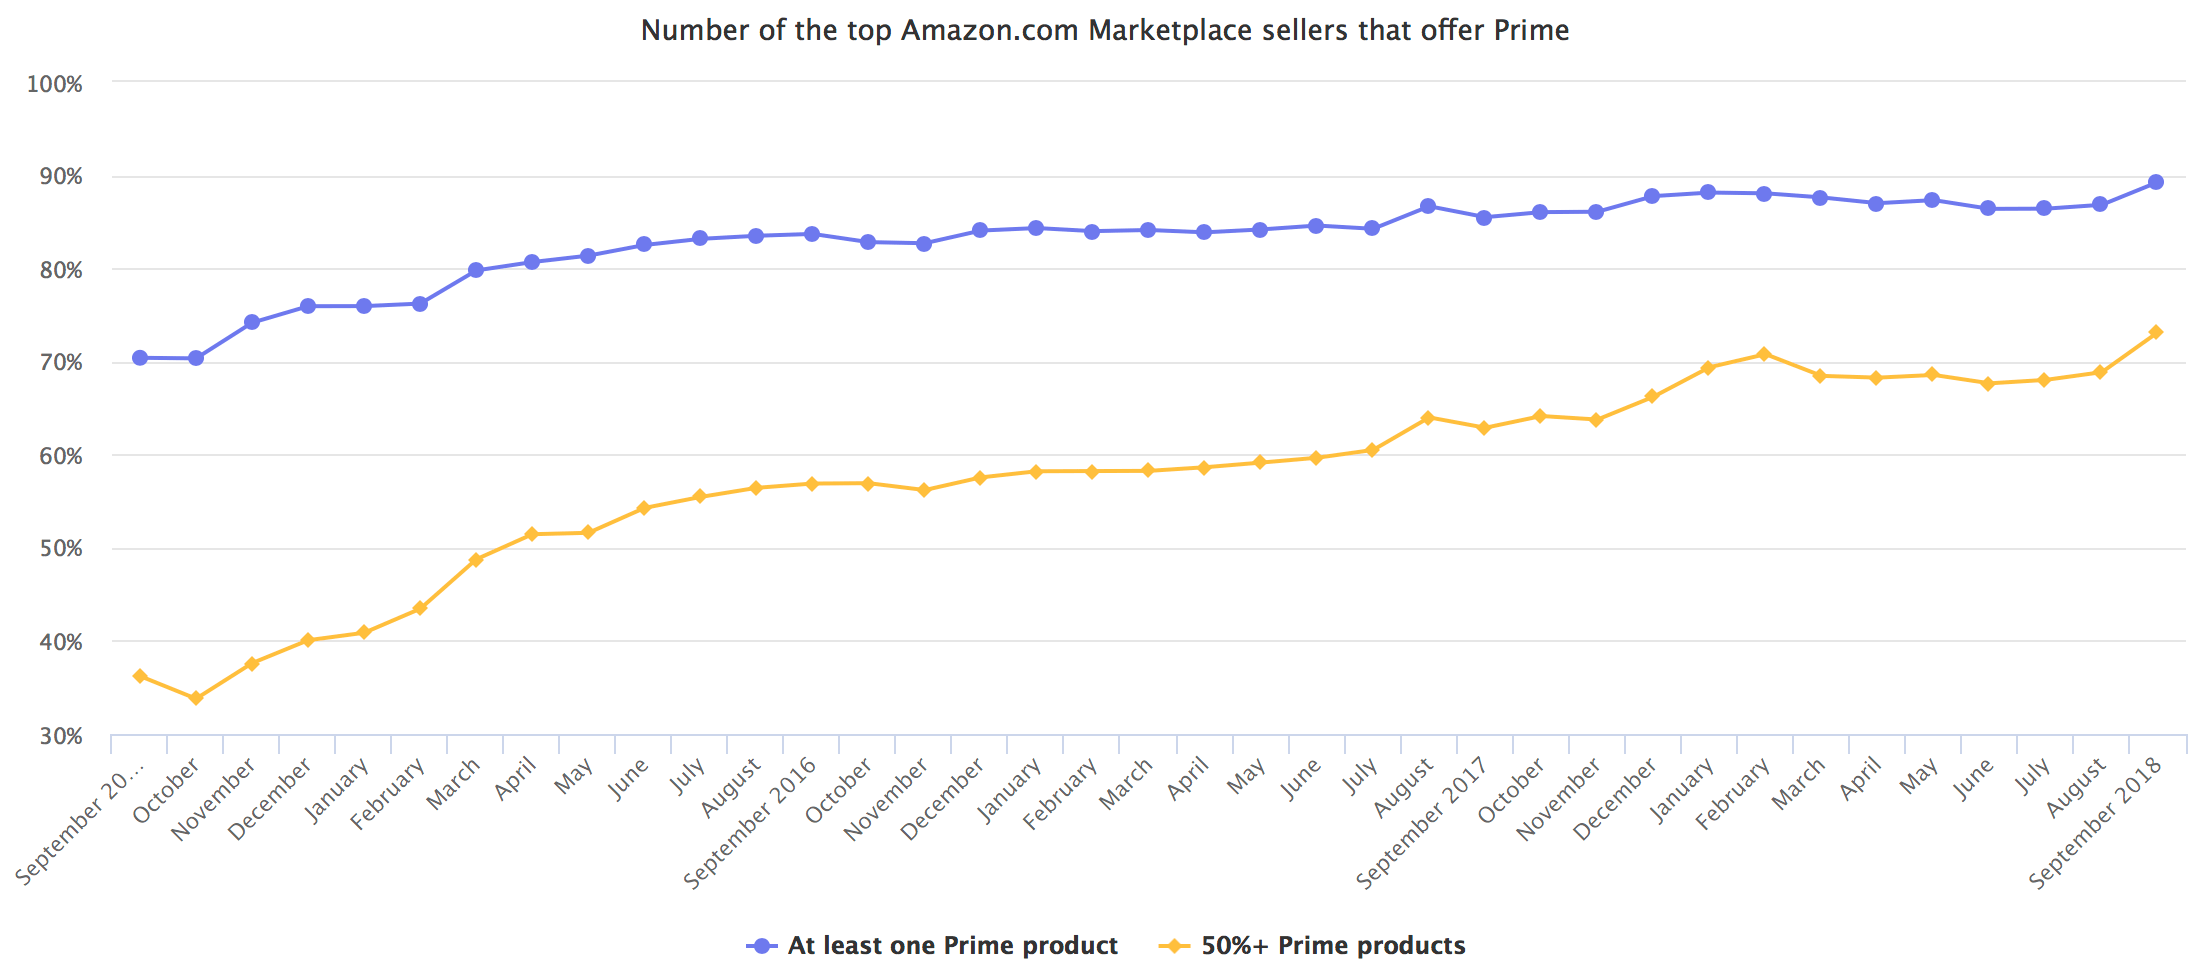 Number of the top Amazon.com Marketplace sellers that offer Prime